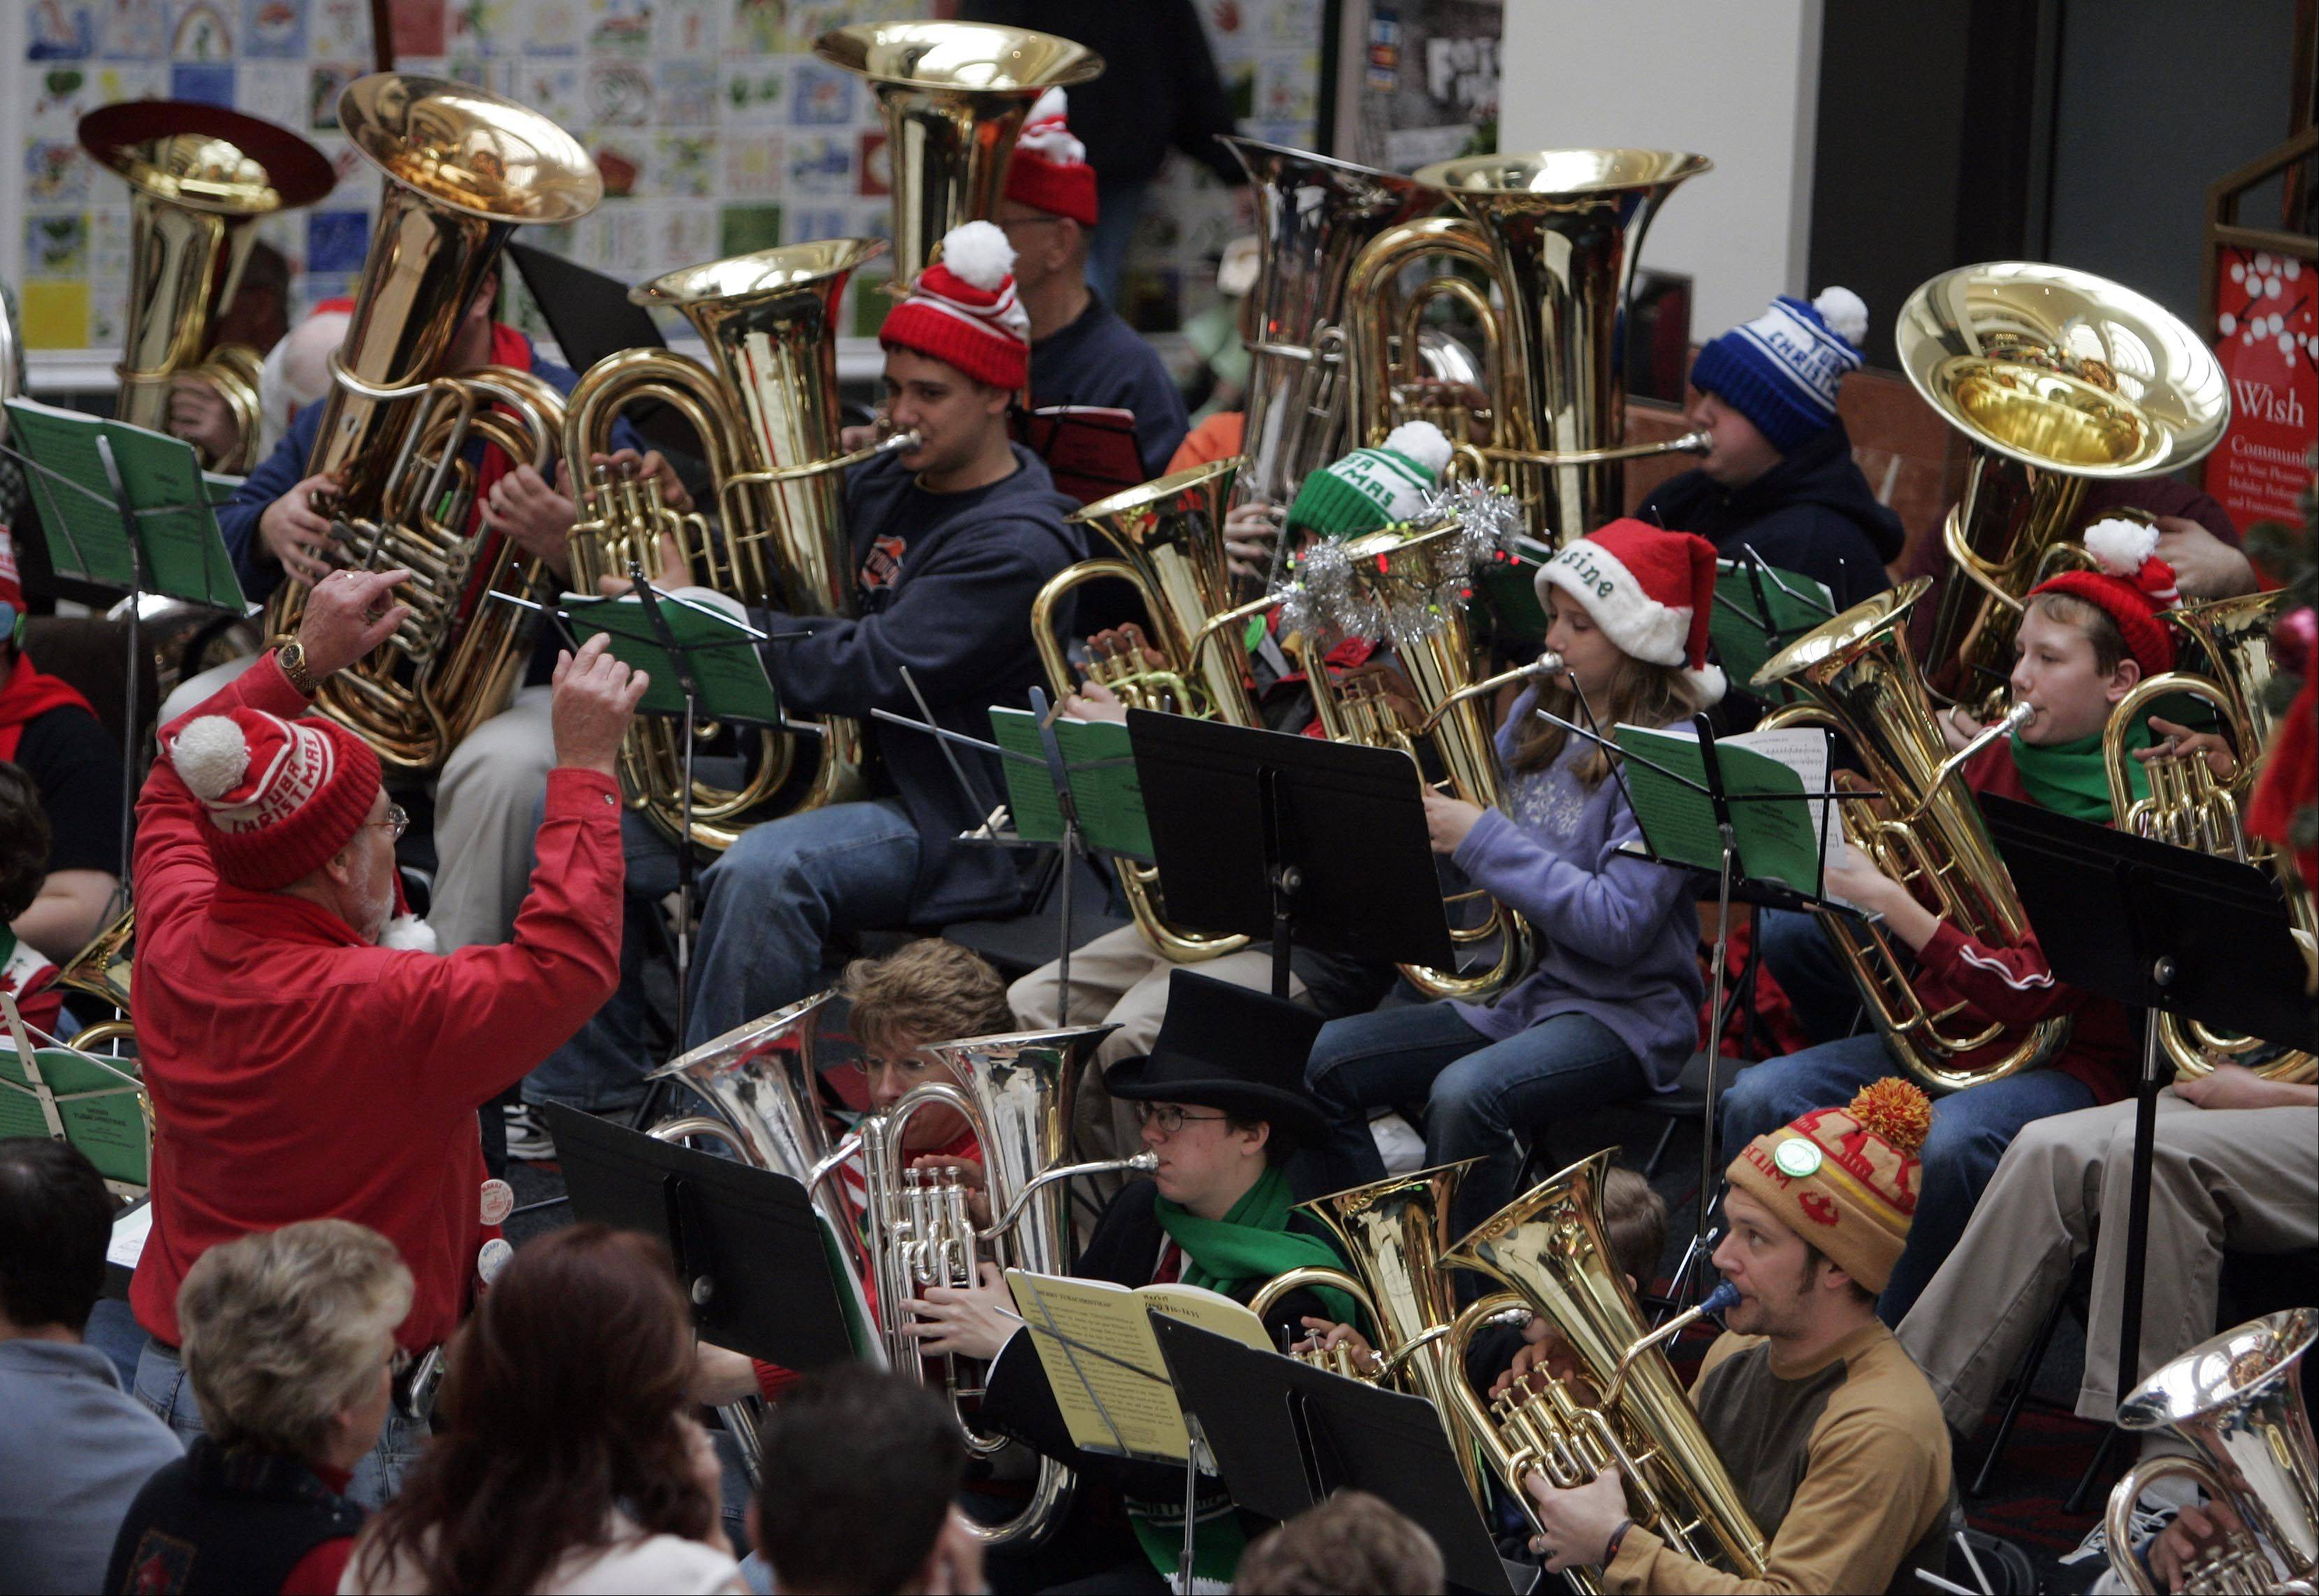 Dozens of tuba players will gather Saturday in Naperville and Aurora under the direction of Naperville Municipal Band Director Ron Keller for their annual Tuba Christmas concerts.